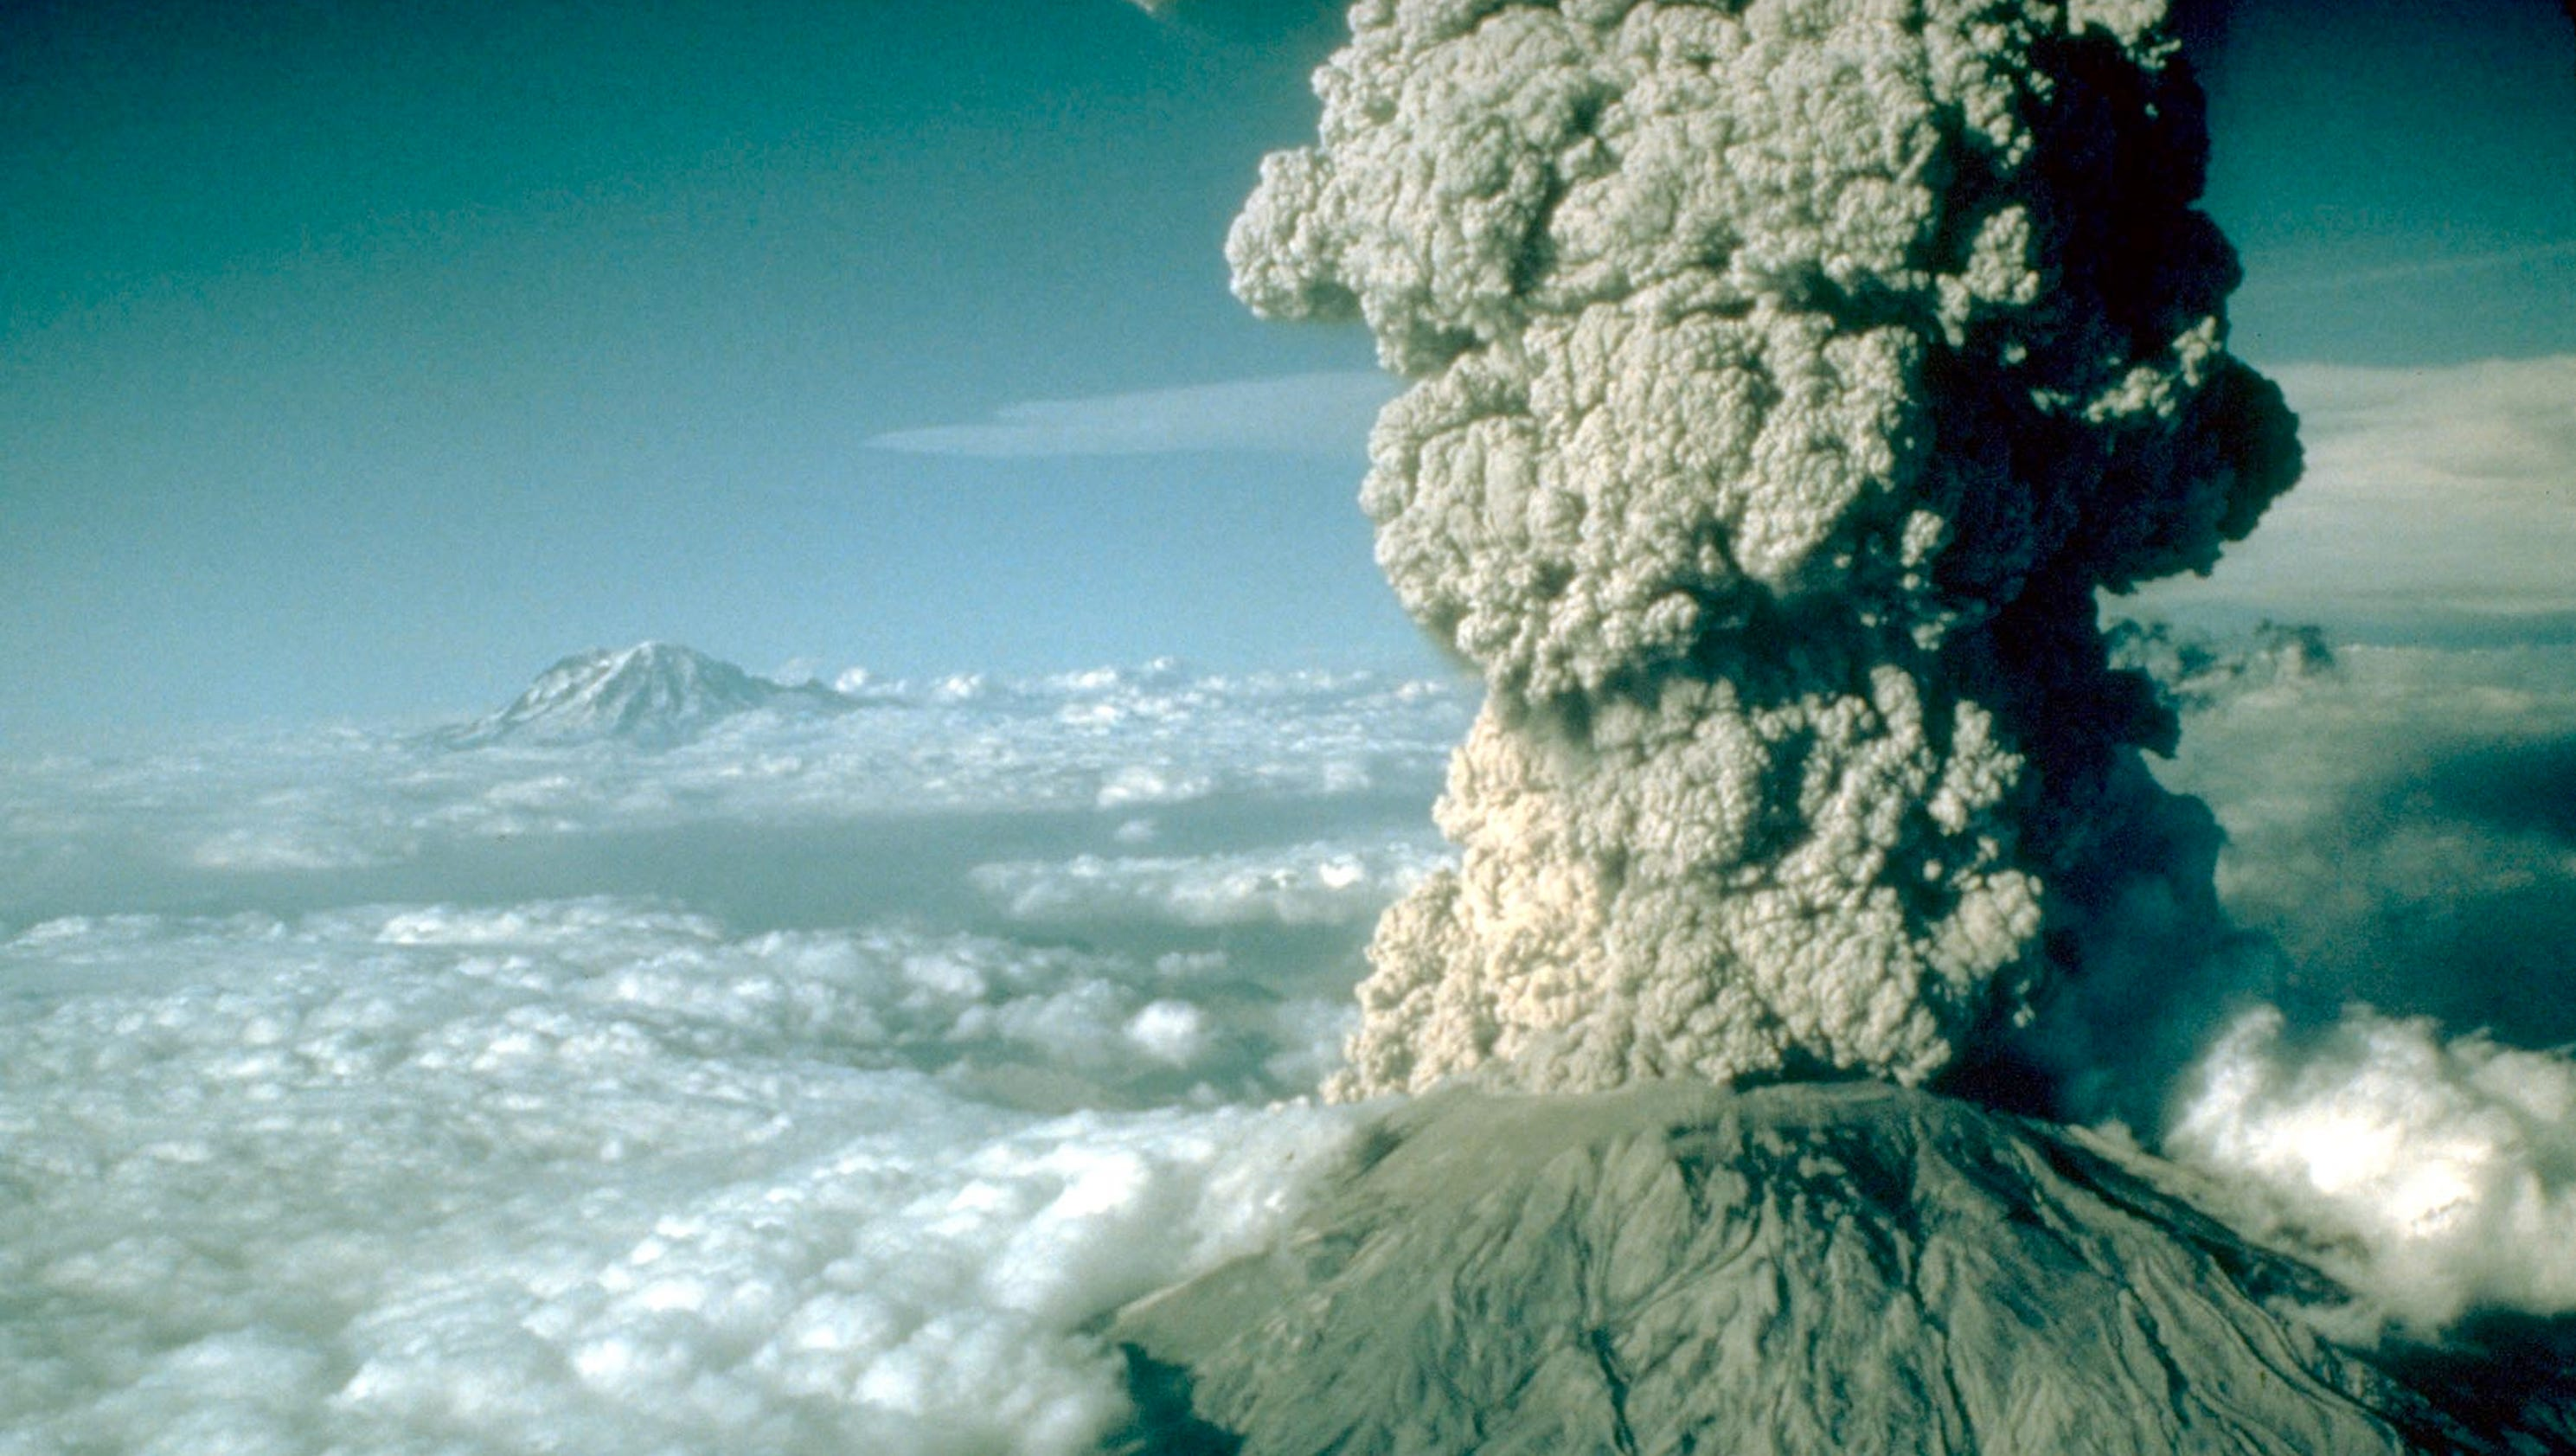 Pictures from the 1980 Mount St. Helens eruption